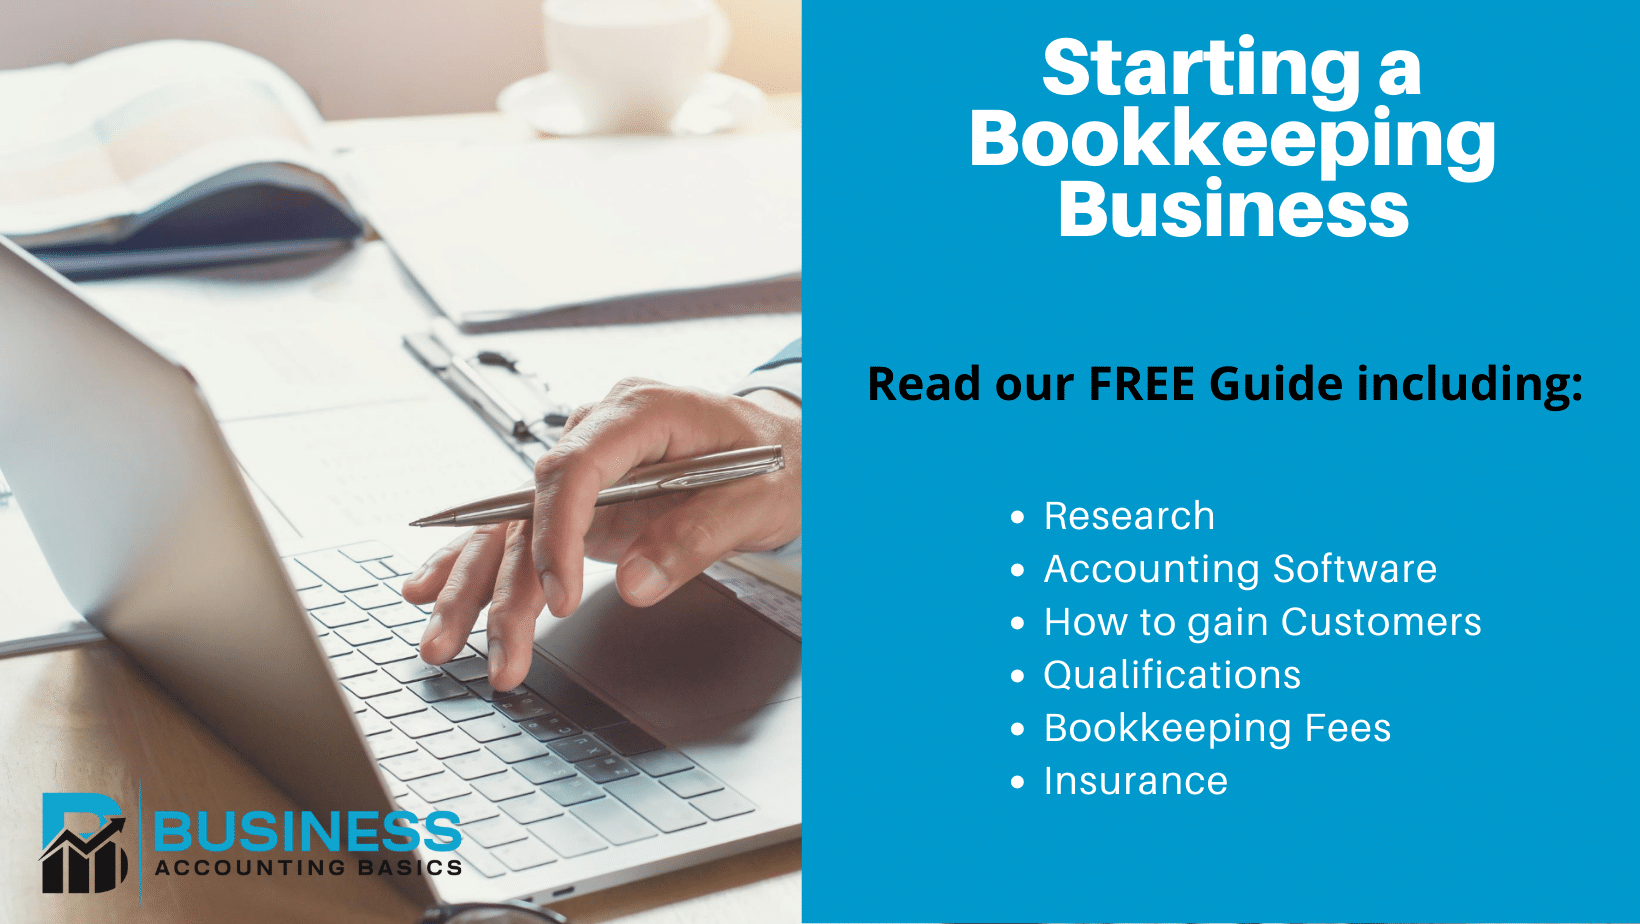 Guide to starting a bookkeeping business